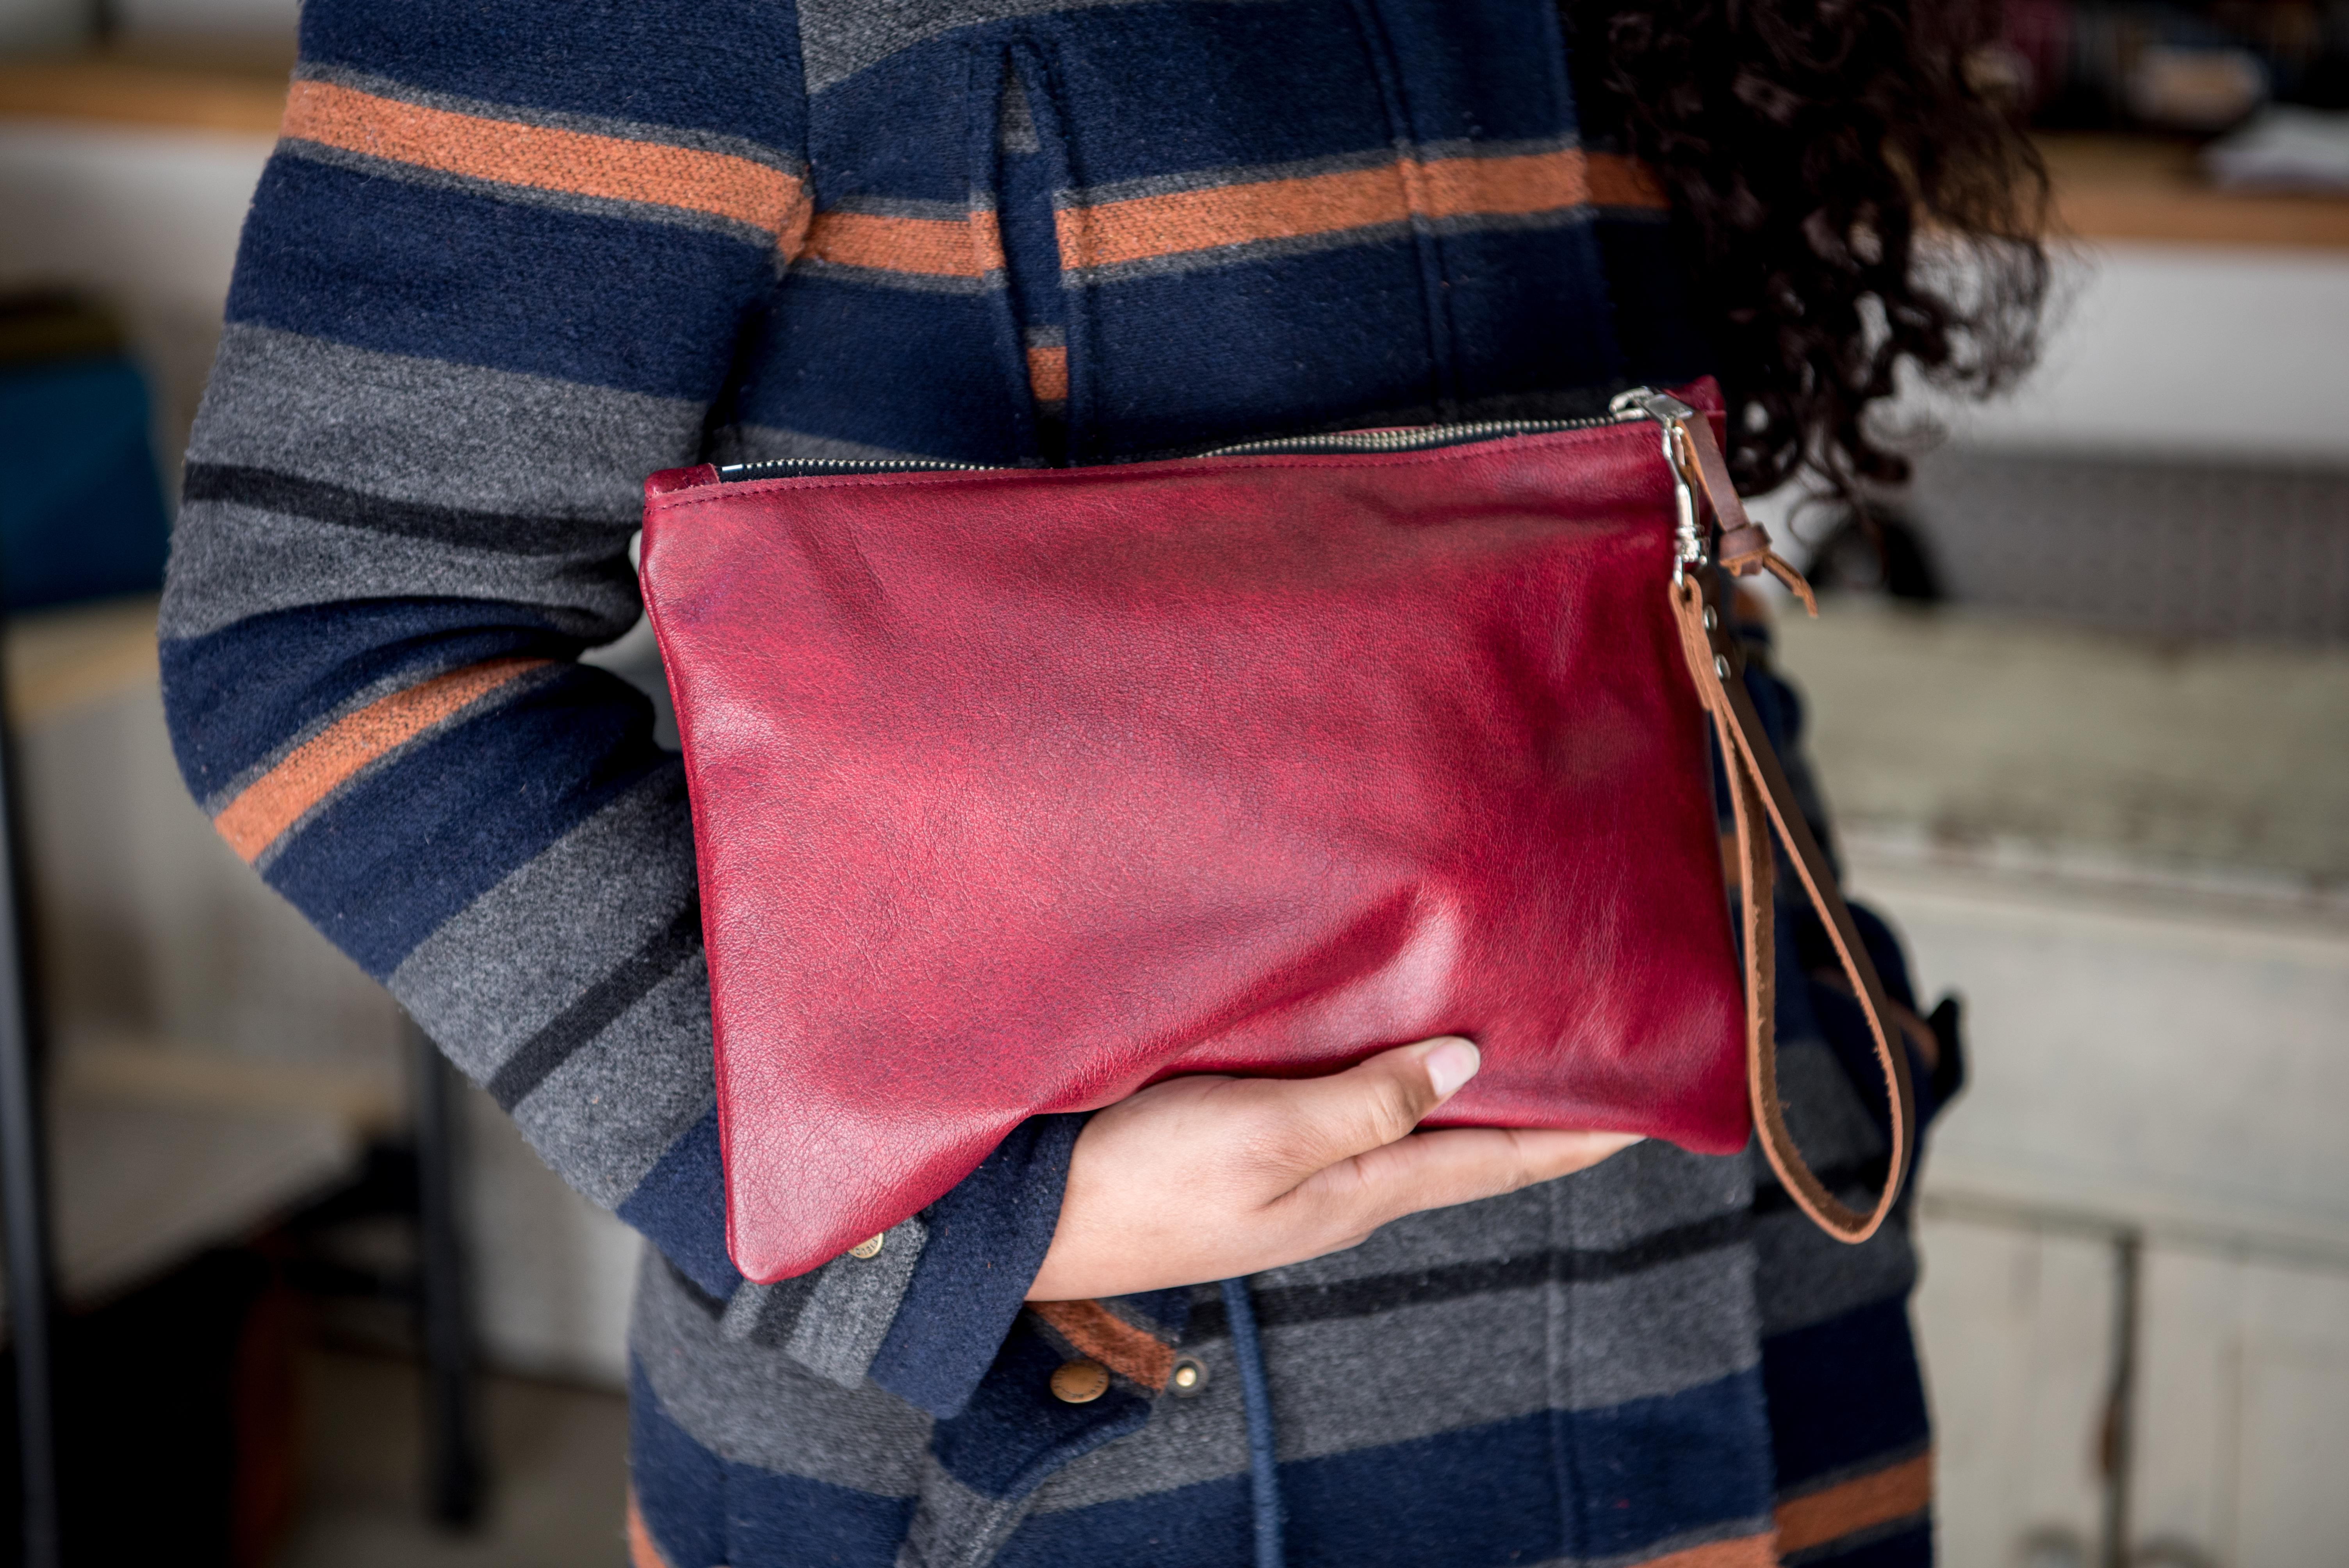 This is another brand that I have Crafty Bastards to thank for my obsession! Just this past weekend, I found myself coming back to the stall again and again, and reminding myself that I was supposed to be holiday shopping for others not myself. But the gorgeous hand-stitched bags are just too dreamy to pass up. And did I mention its a woman-run, woman-owned business? #ladyboss! (Image: Courtesy StickRivet)